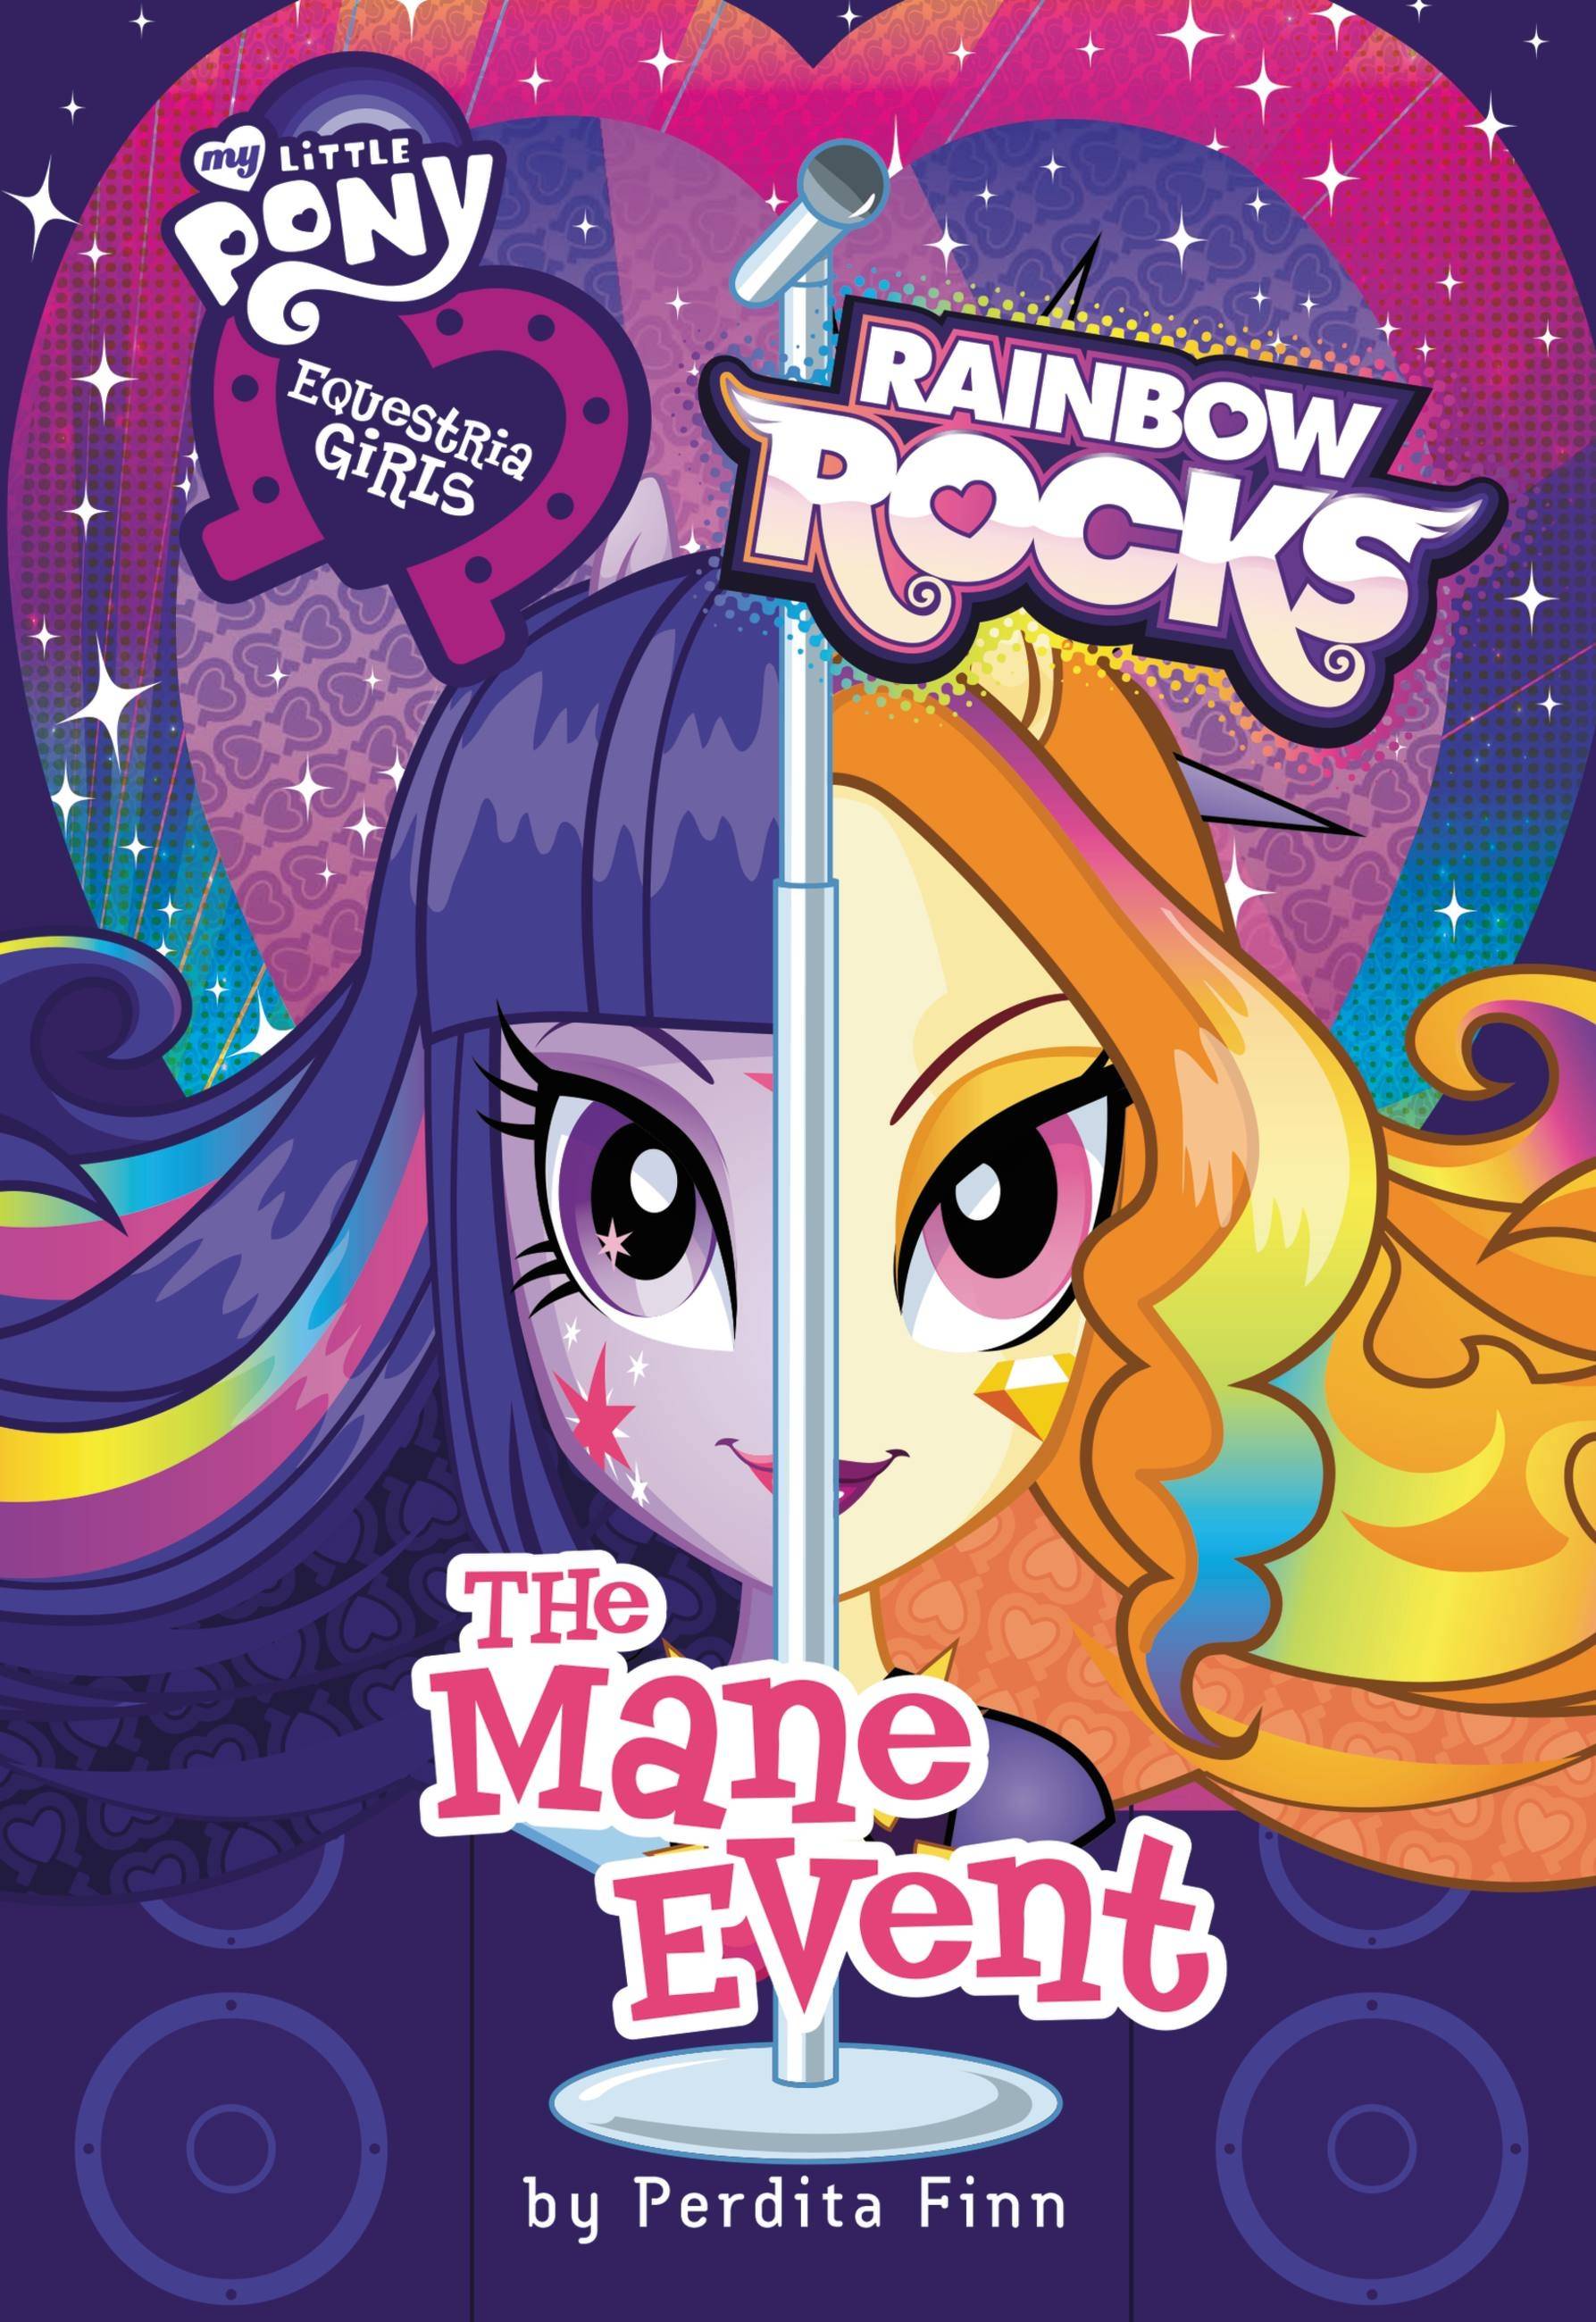 My Little Pony Equestria Girls Rainbow Rocks The Mane Event By Perdita Finn Little Brown Books For Young Readers